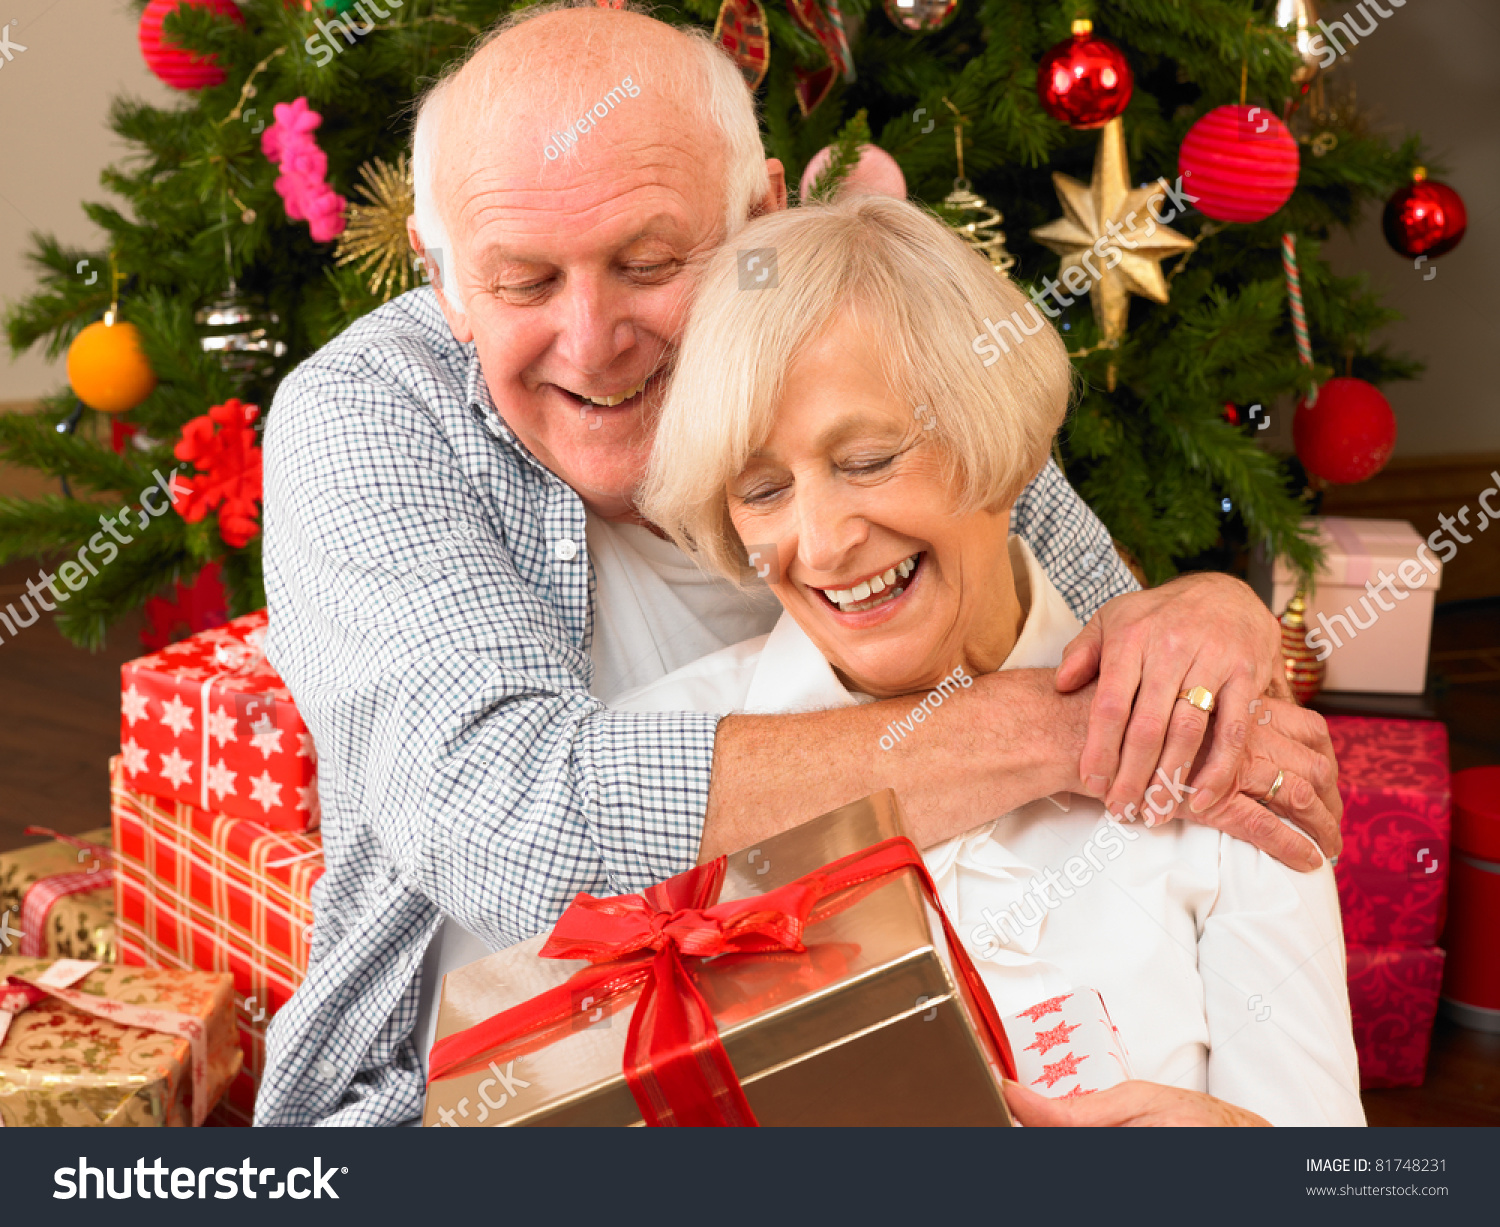 Senior Christmas Gifts: Senior Couple With Gifts In Front Of Christmas Tree Stock